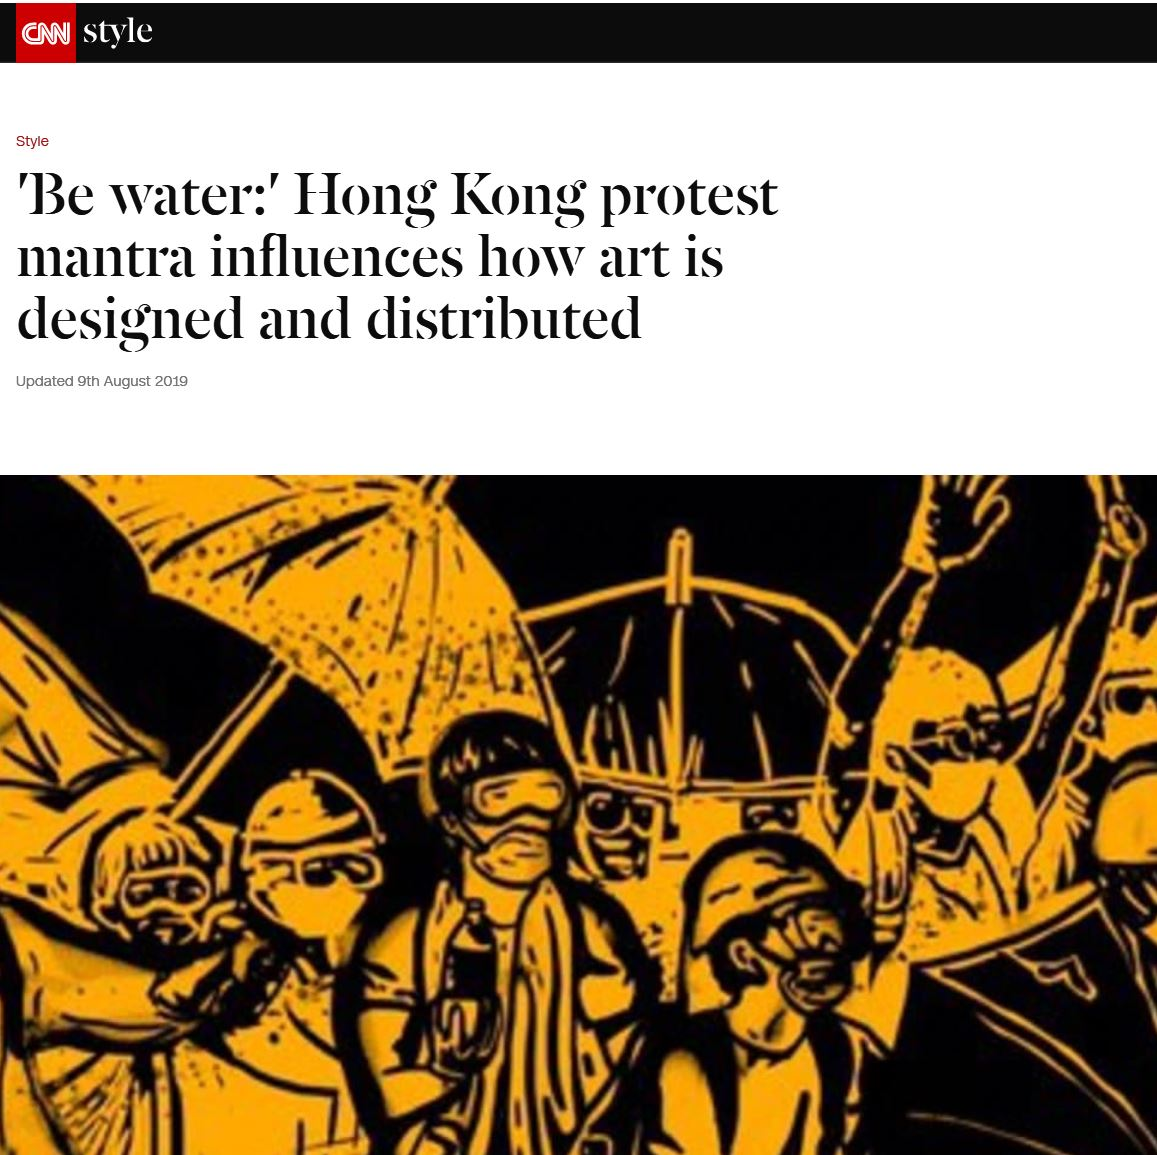 August/9/2019 CNN  Shared my analysis on poster art and its impact on recent Hong Kong protest.